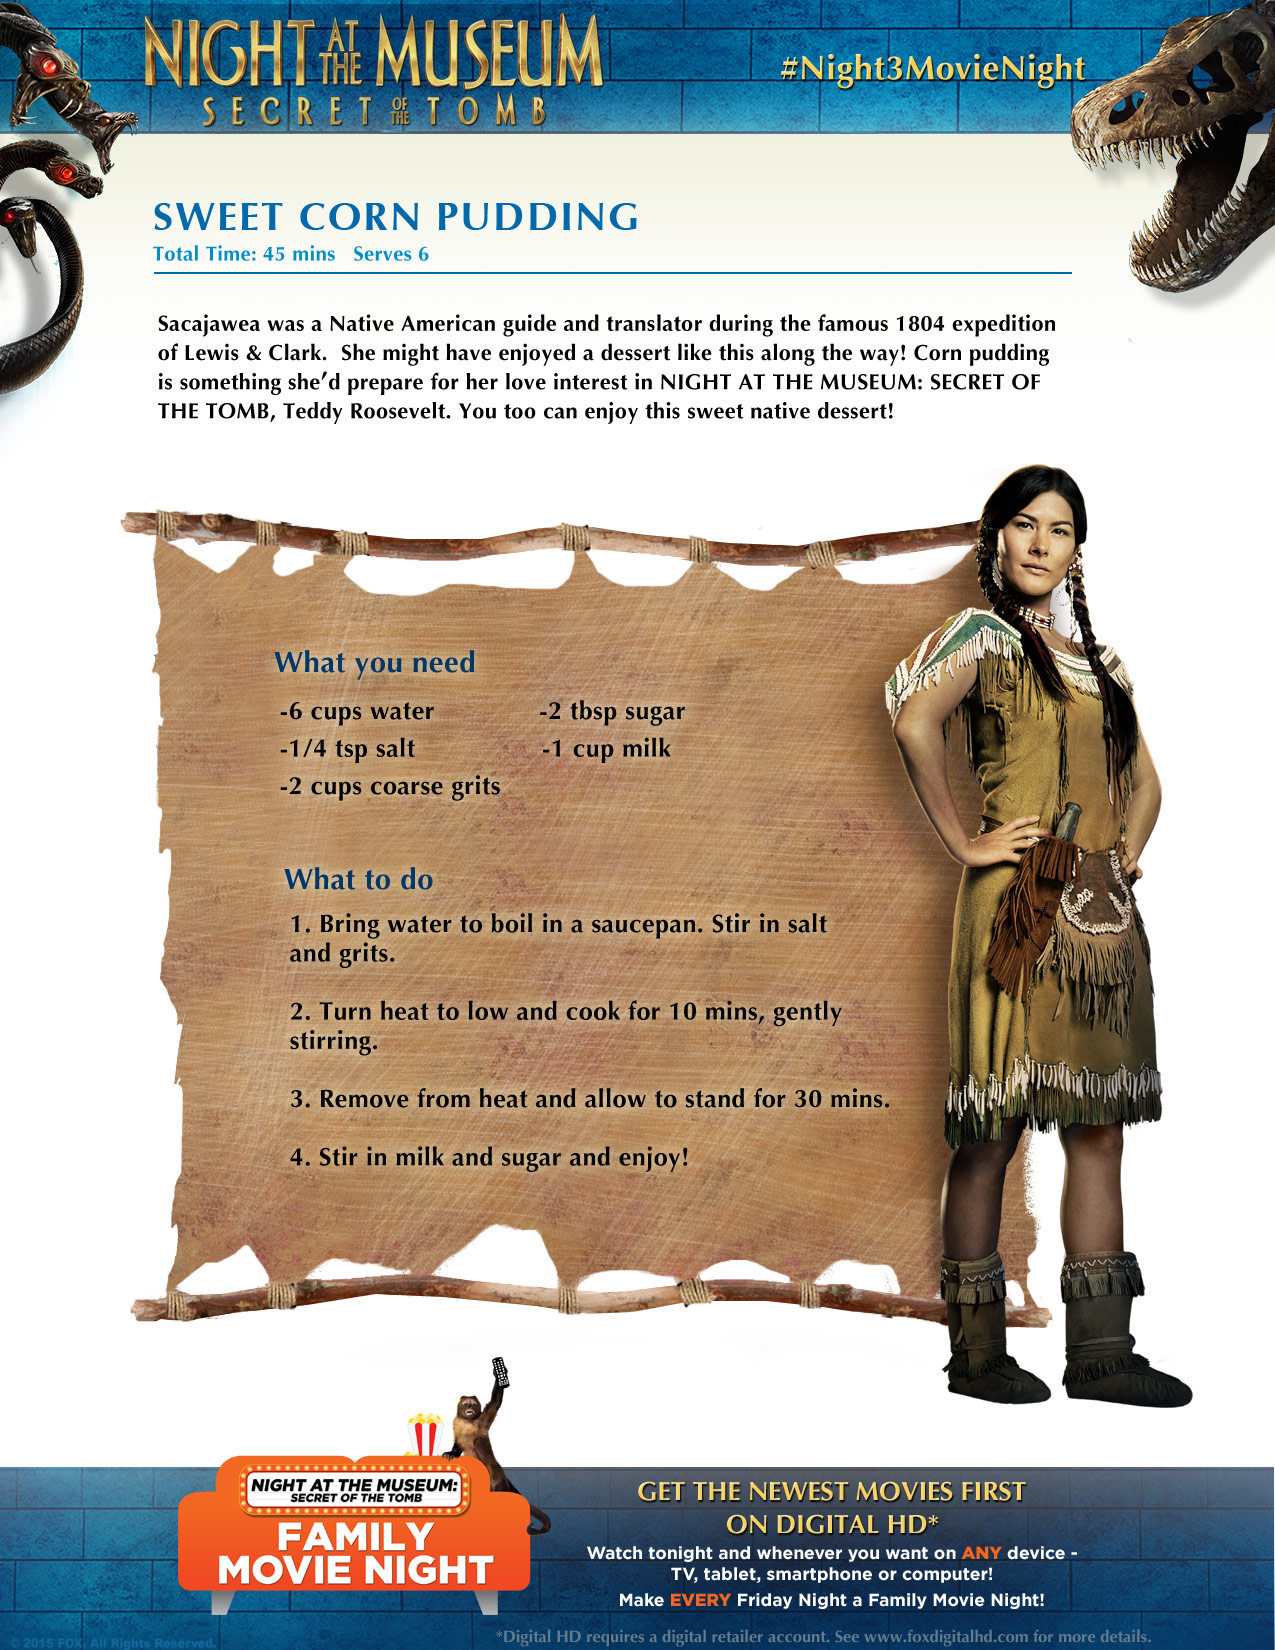 Sacajawea From Night At The Museum Secret Of The Tomb Knows A Gerat Recipe For Sweet Cor